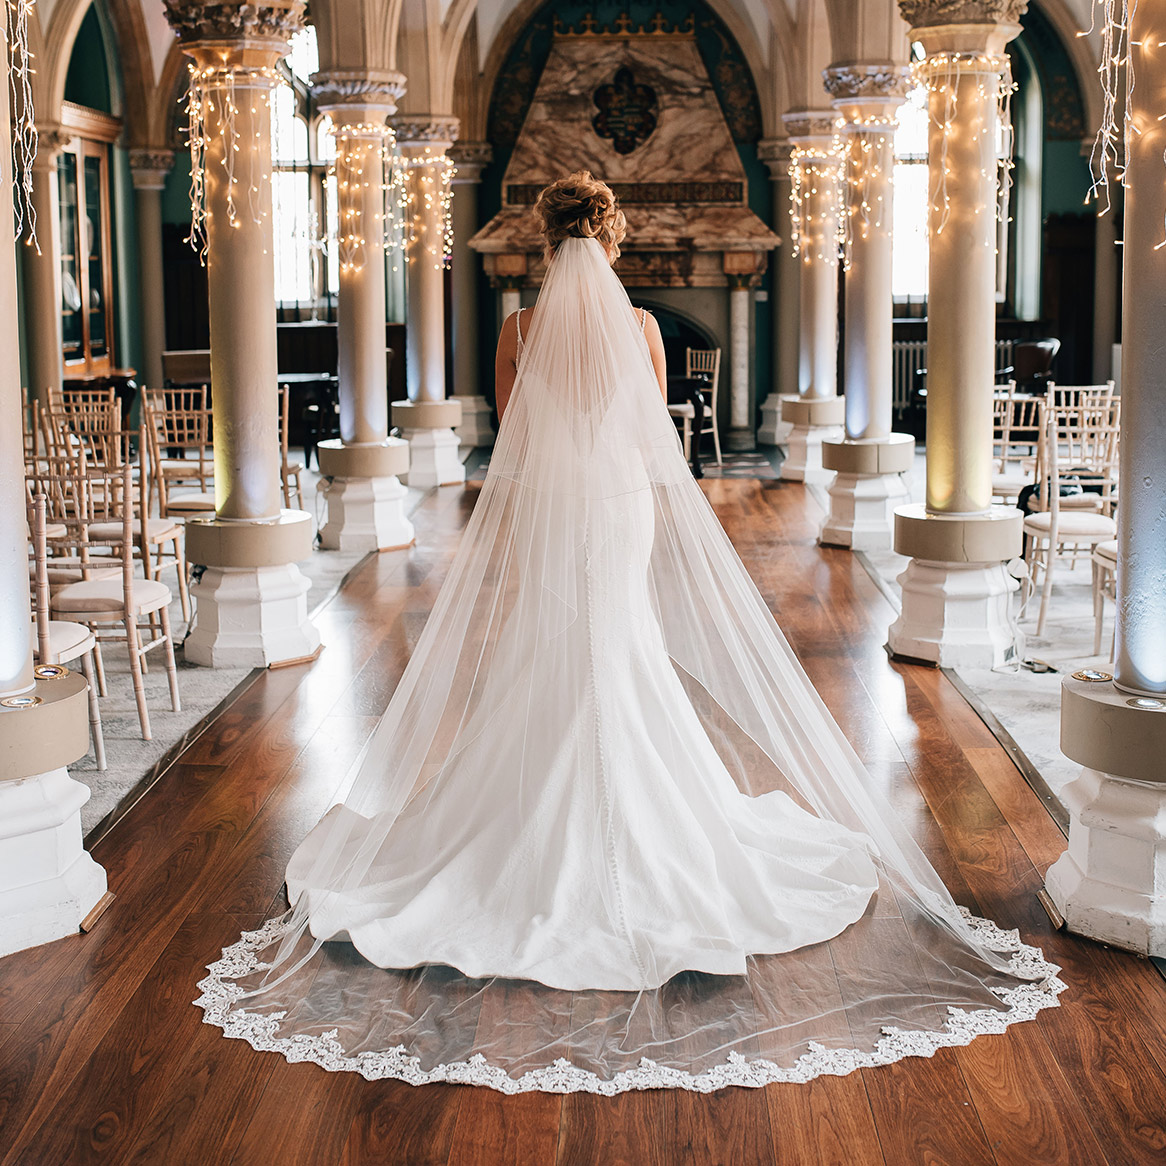 Walk down the isle on your special day at Wotton House